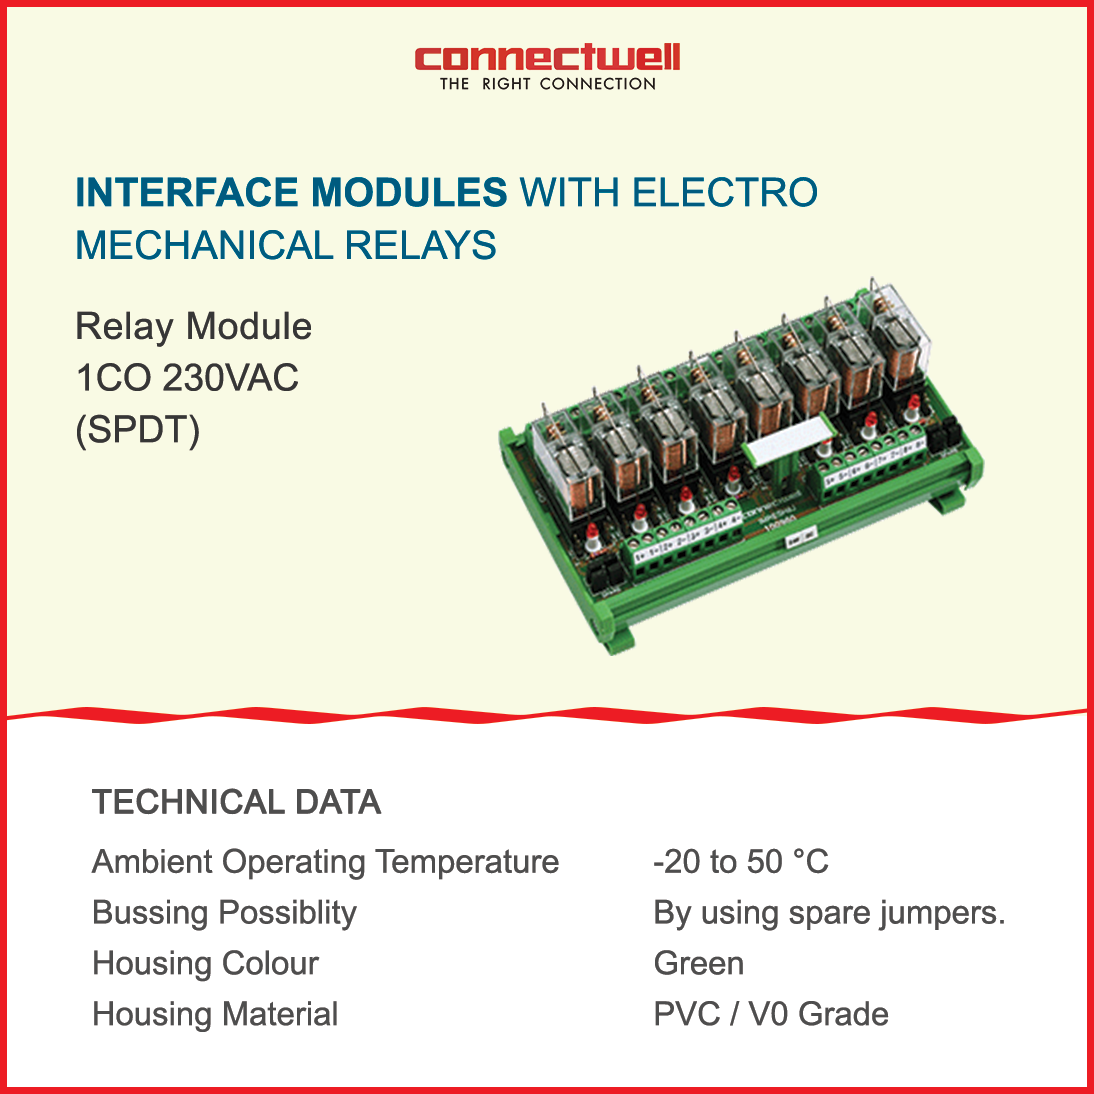 Product Interface Modules With Electro Mechanical Relays Using The Solidstaterelaycircuitpng Electromechanical Relay In Interfaces